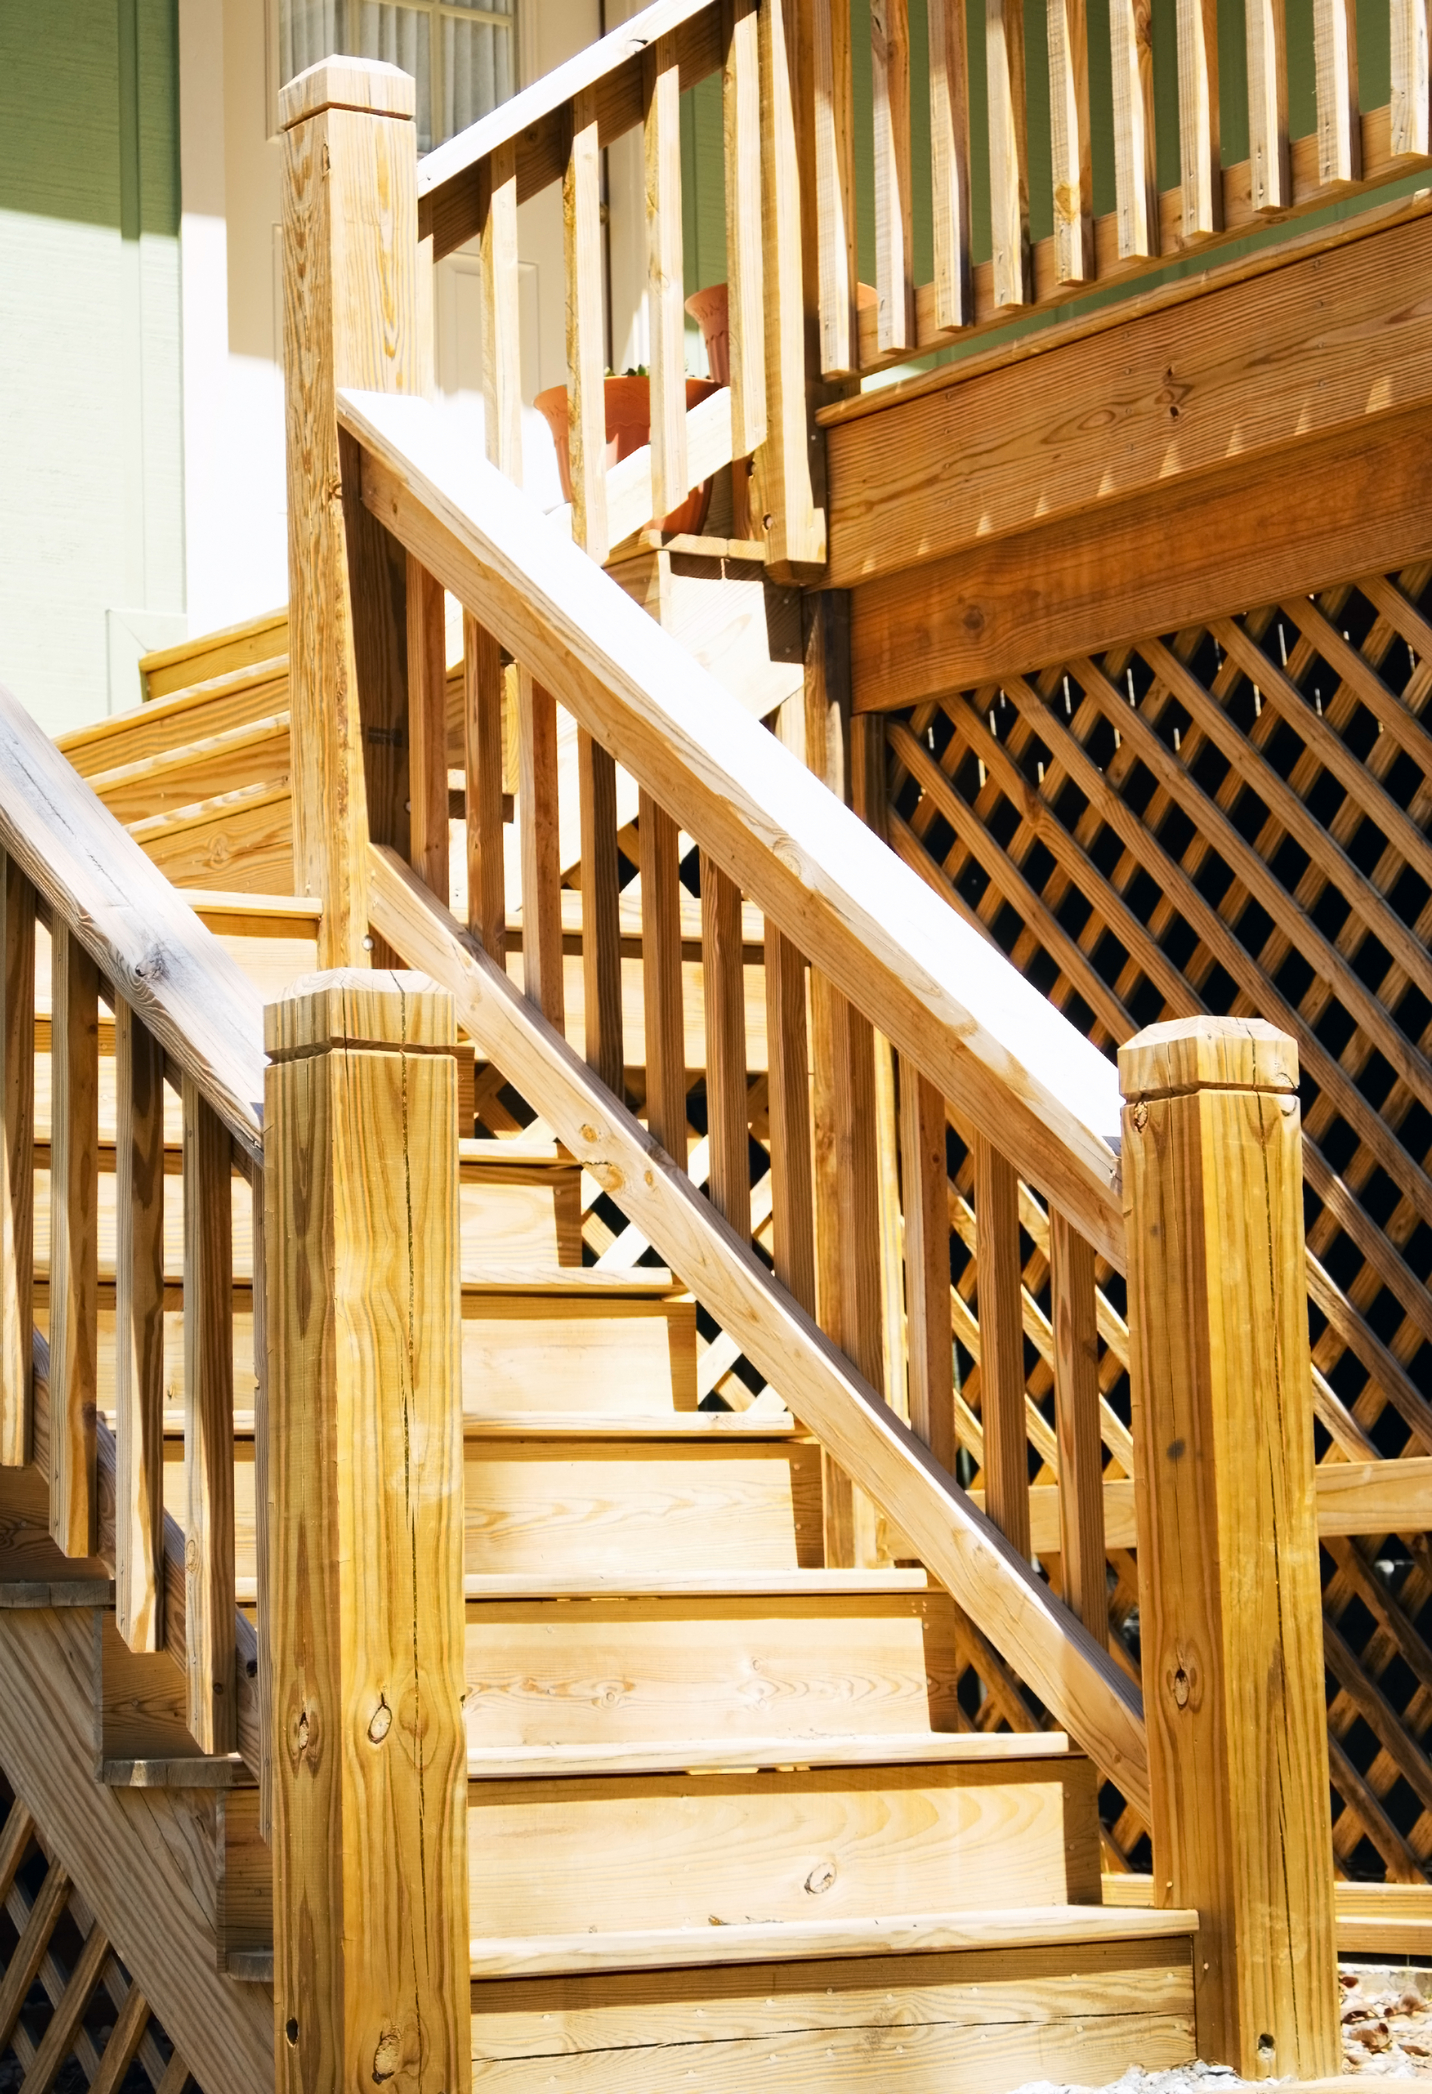 Building Deck Stairs Railing Design And Ideas - Building deck stairs railing